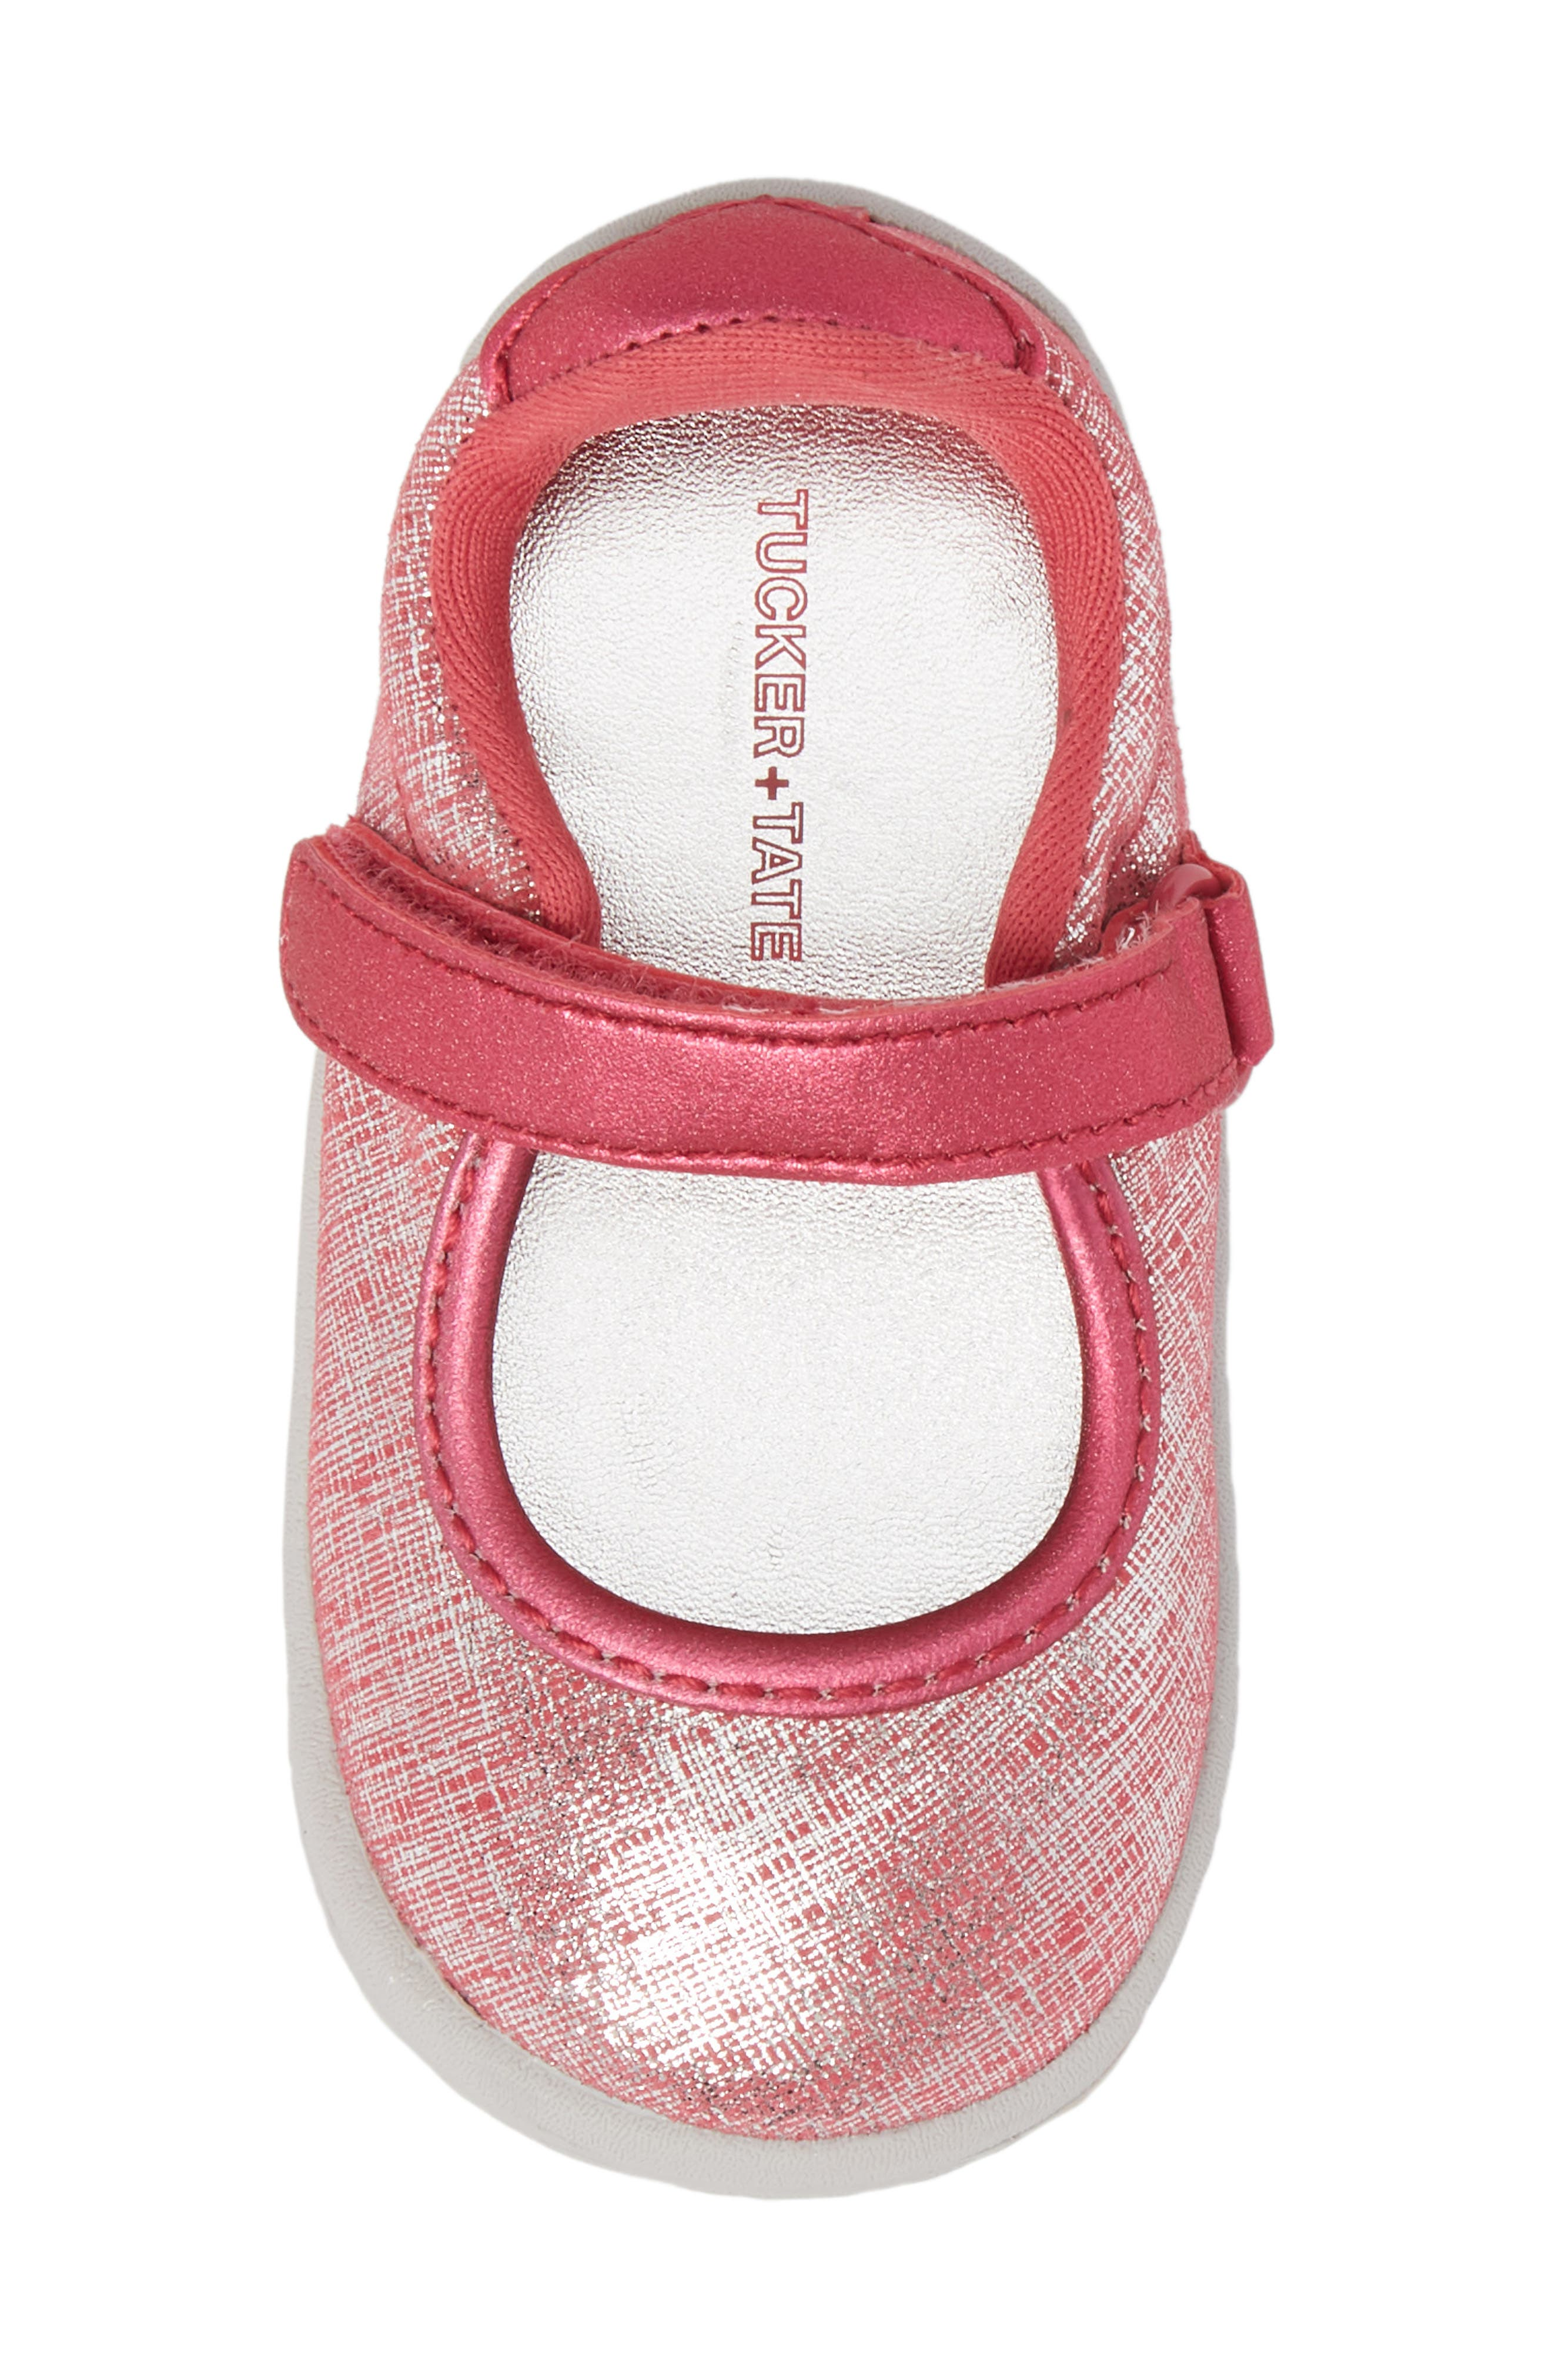 Nora Metallic Mary Jane Sneaker,                             Alternate thumbnail 5, color,                             Pink Shimmer Leather